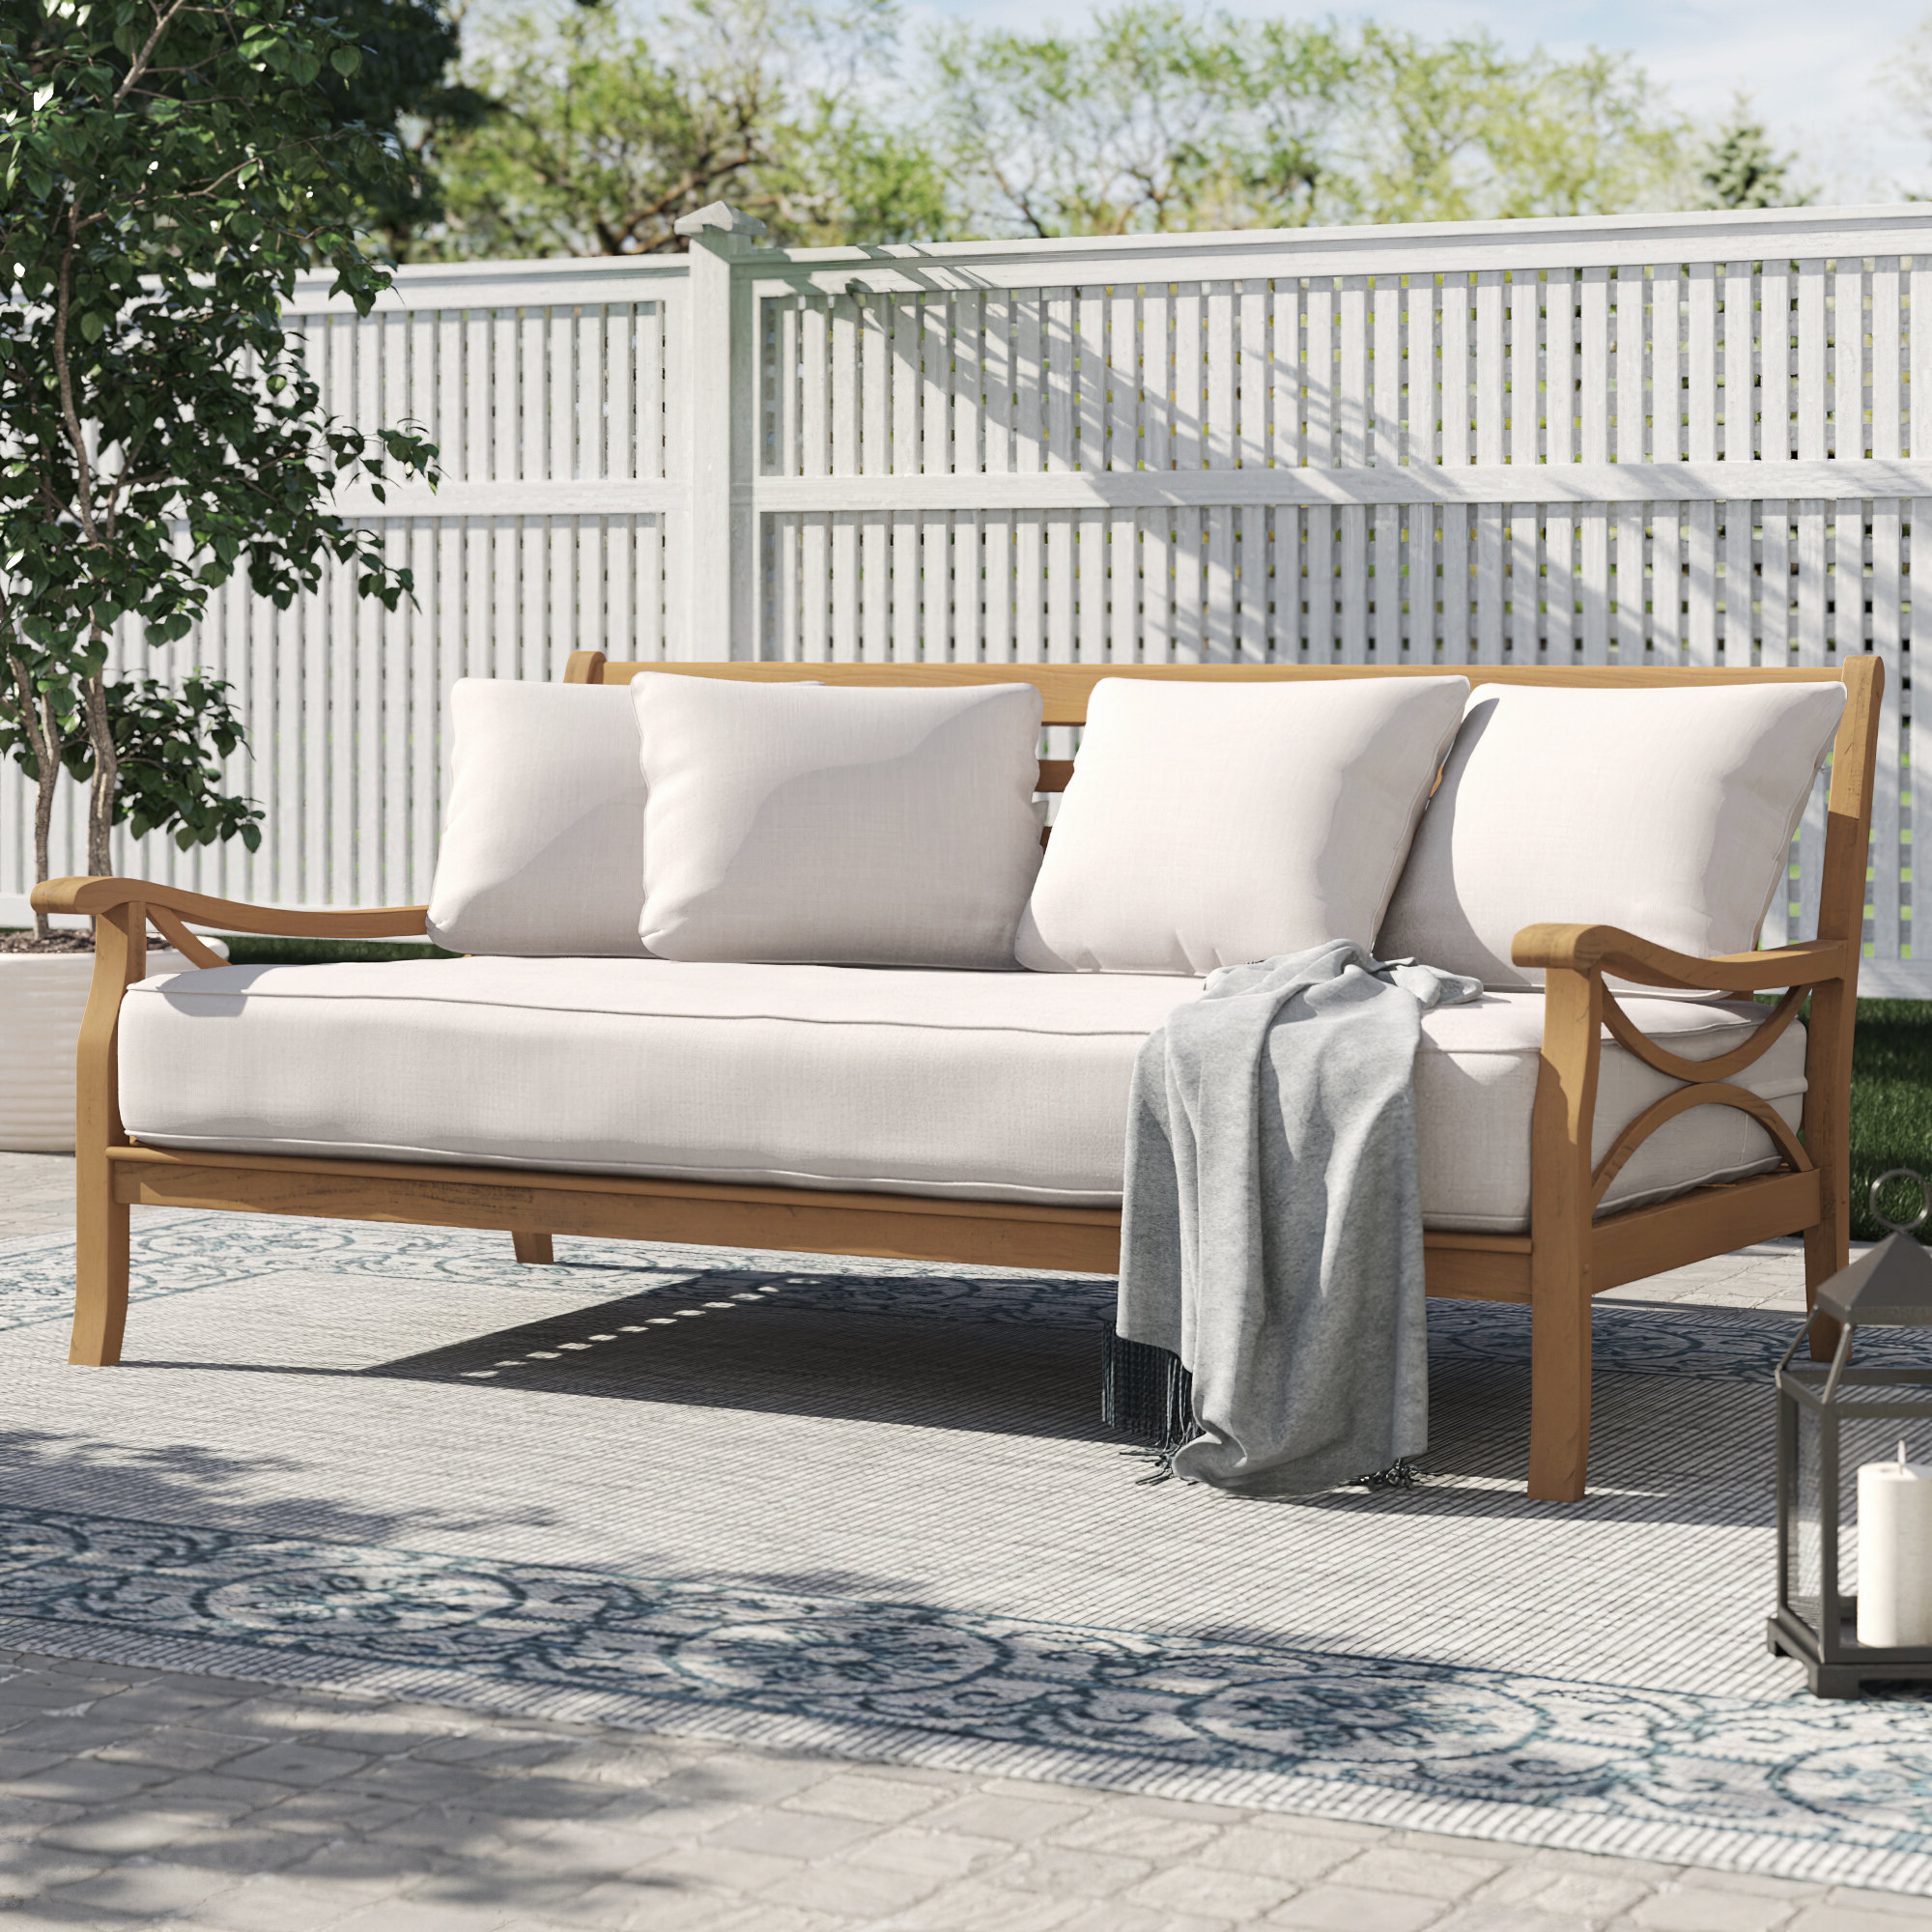 Best And Newest Bodine Patio Daybeds With Cushions Intended For Brunswick Teak Patio Daybed With Cushions (View 10 of 25)